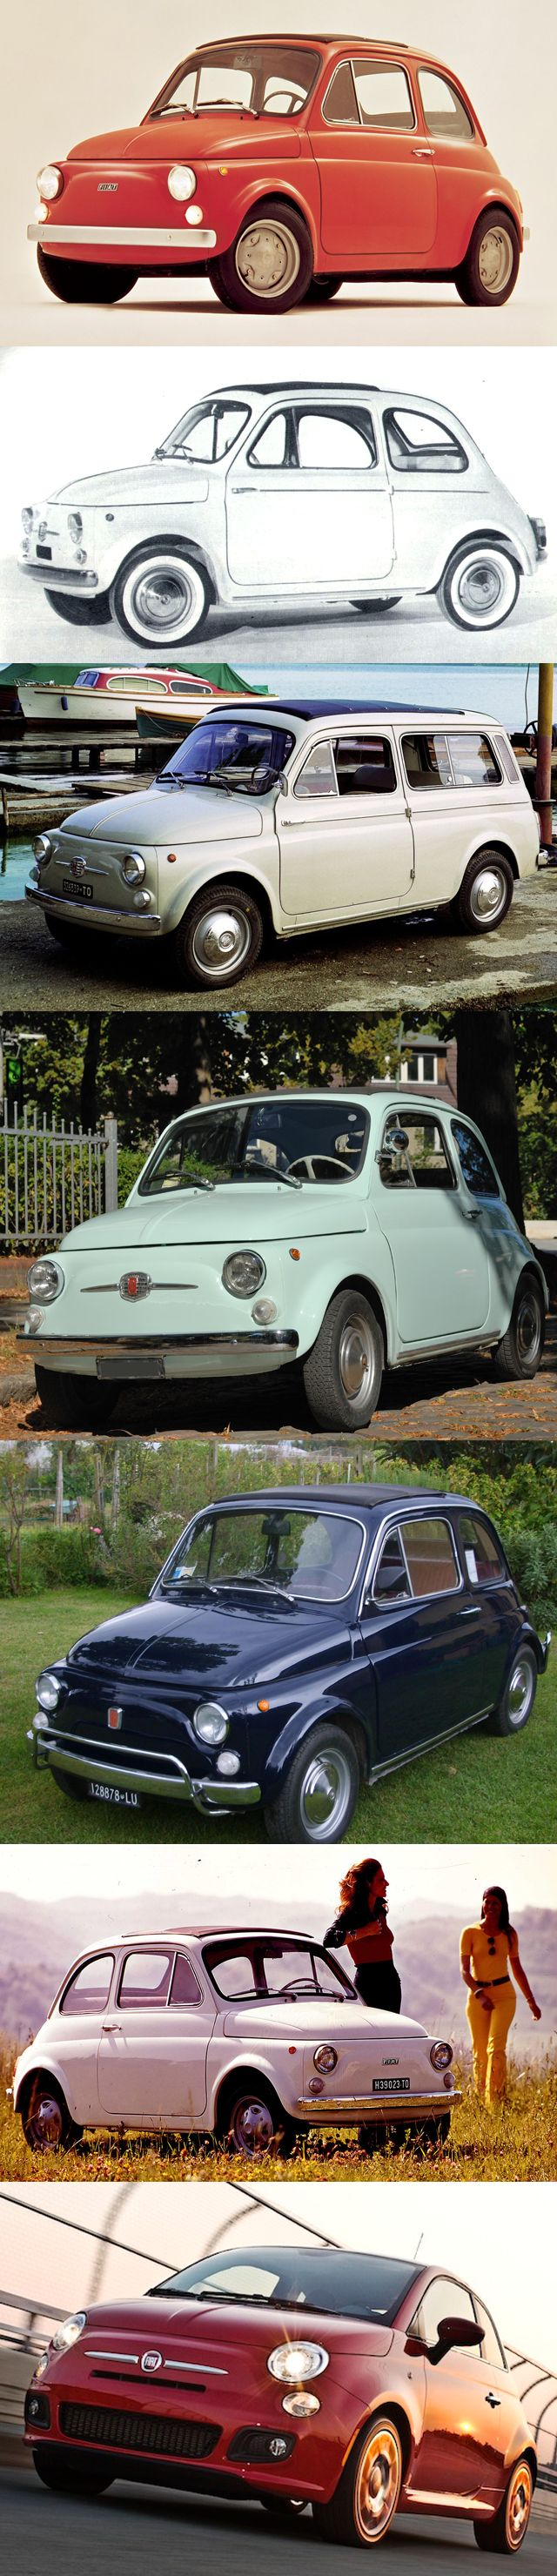 FIAT 500 Evolution from 1957 - 2011